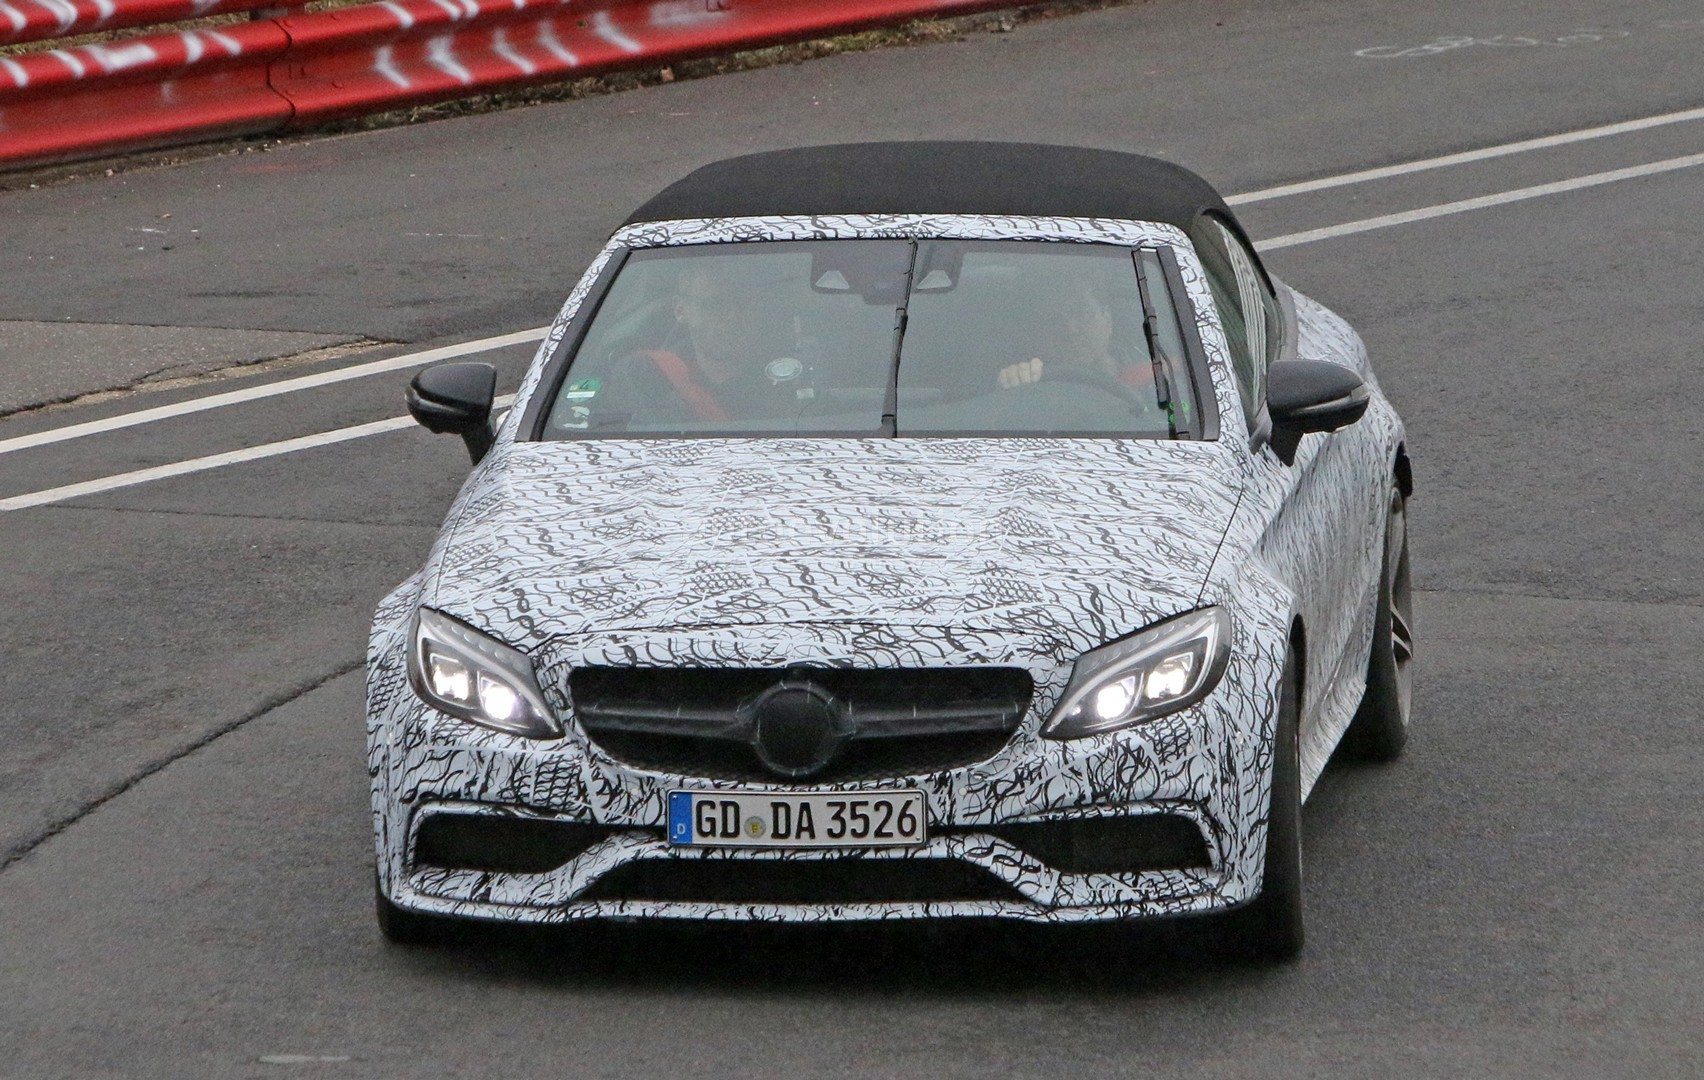 2017 mercedes amg c63 cabriolet tests at the nurburgring. Black Bedroom Furniture Sets. Home Design Ideas